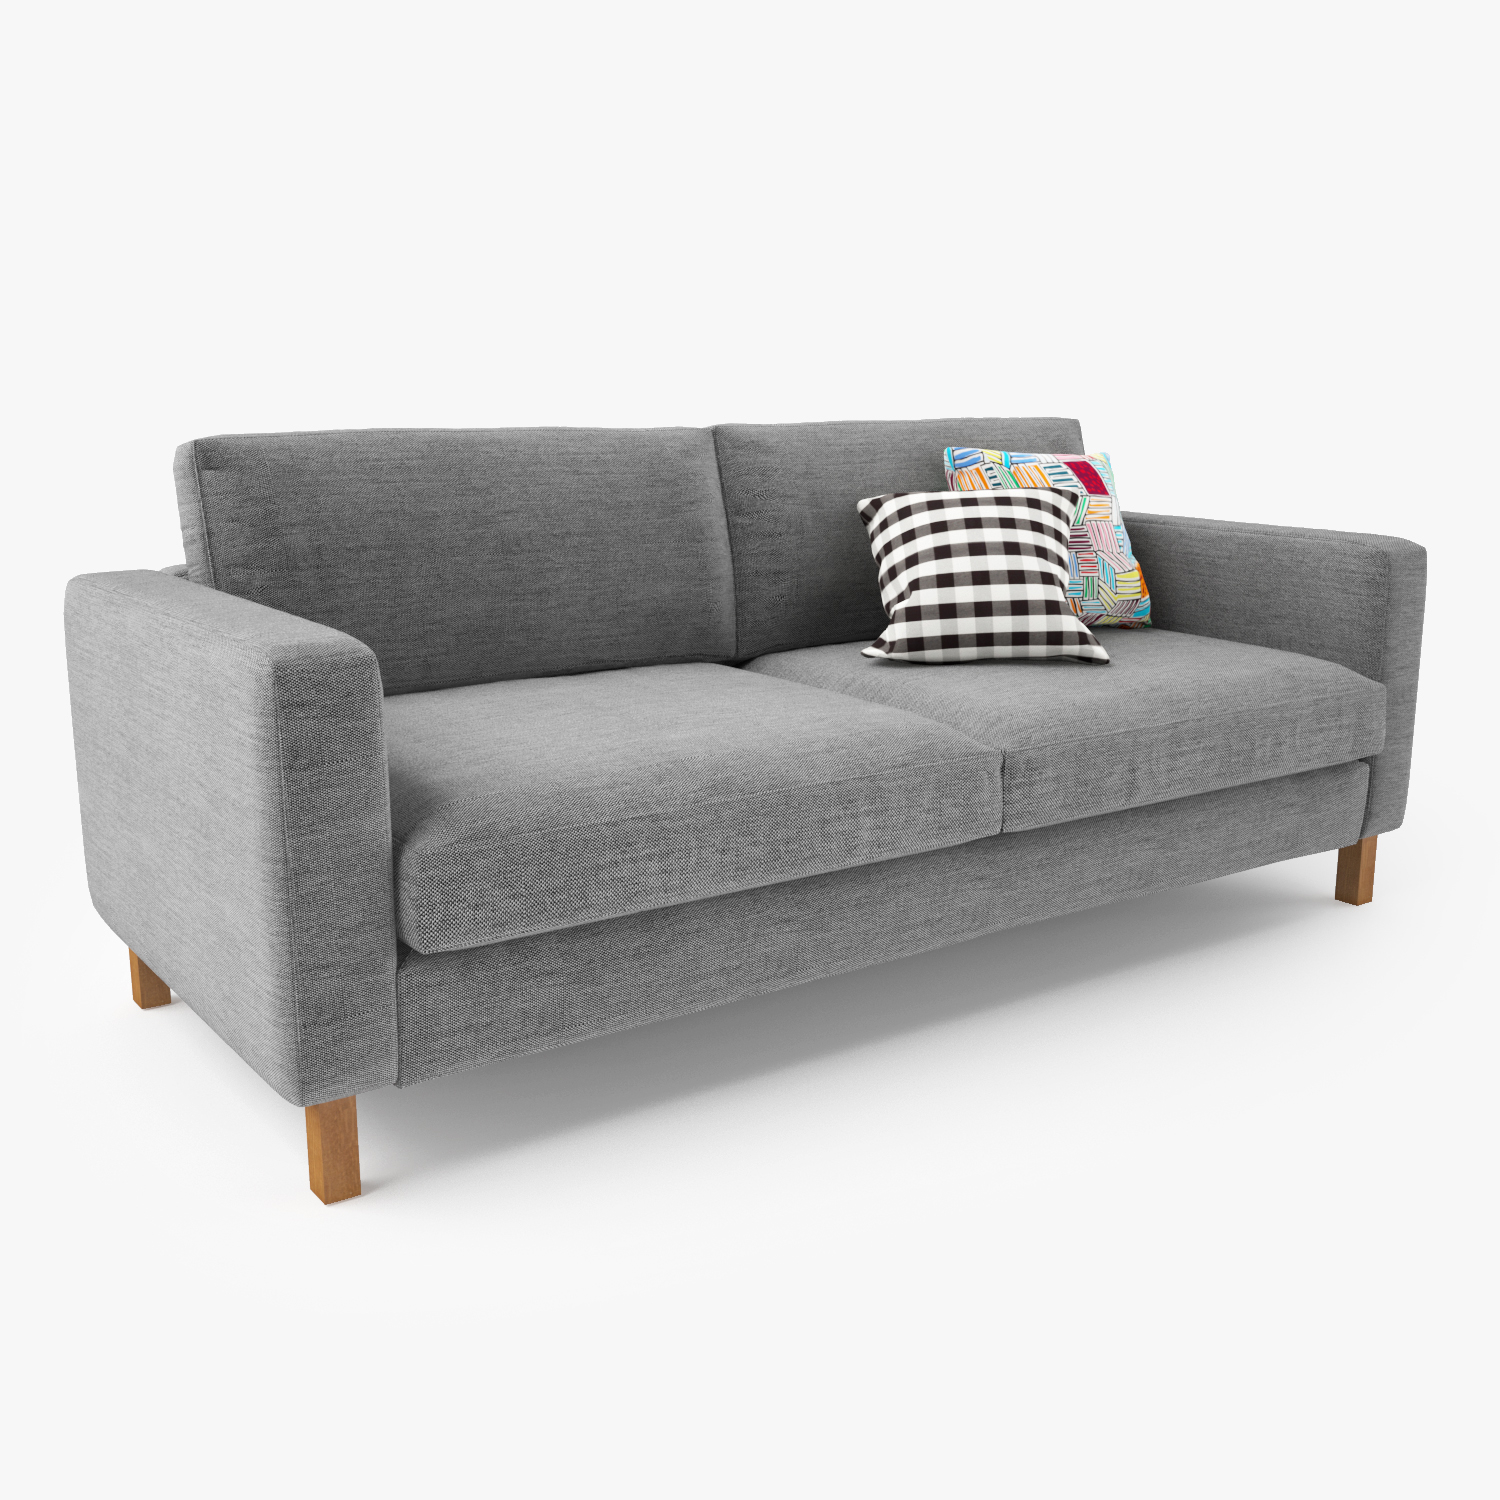 Pleasing Ikea Karlstad Sofa Gmtry Best Dining Table And Chair Ideas Images Gmtryco